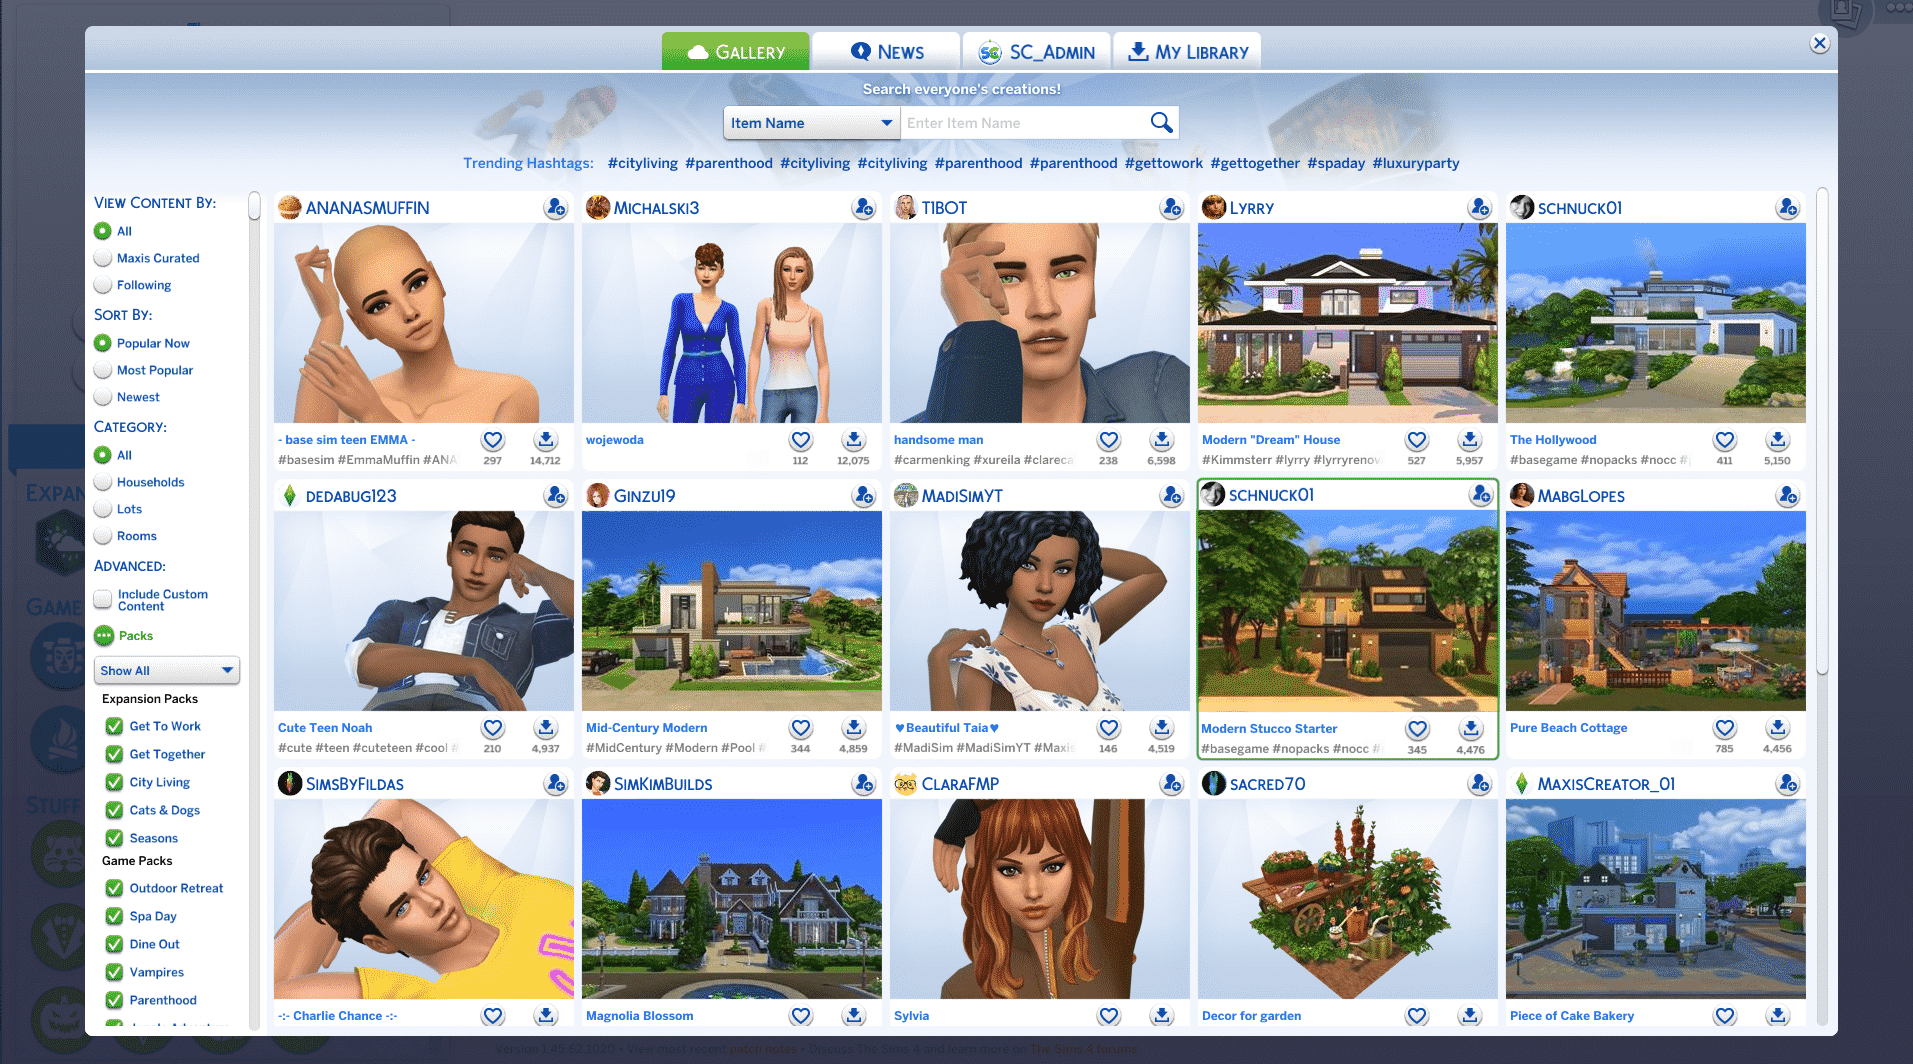 The Sims 4 How To Fix Gallery Ui Issues Caused By Mods